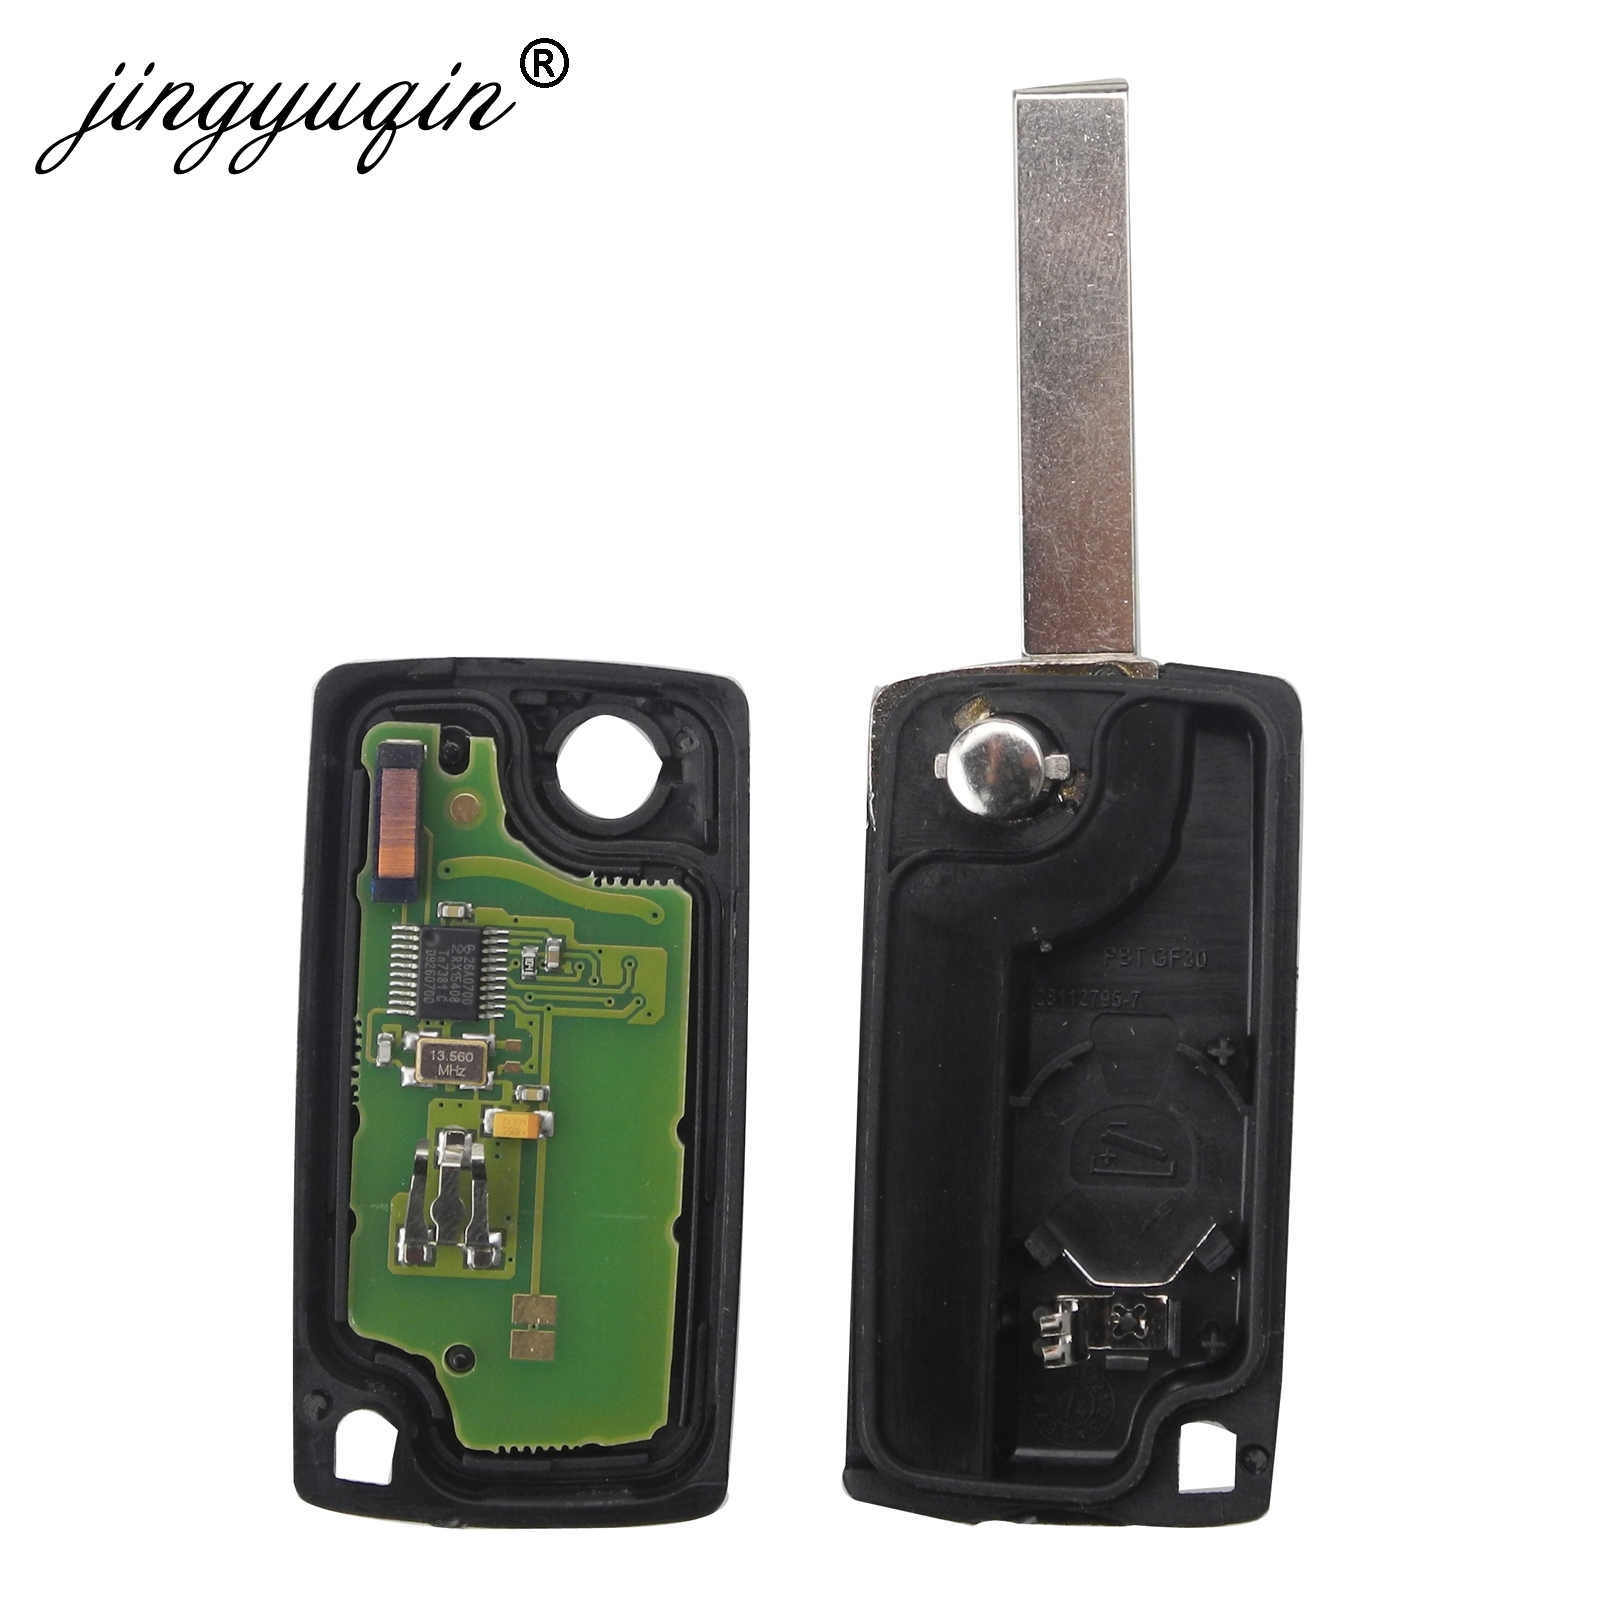 Image 5 - jingyuqin 434Mhz ASK FSK 2 Button Remote Flip Key Fob For Citroen C2 C3 C4 C5 C6 C8 Xsara Picasso CE0523 Ce0536 VA2/HCA Blade-in Car Key from Automobiles & Motorcycles